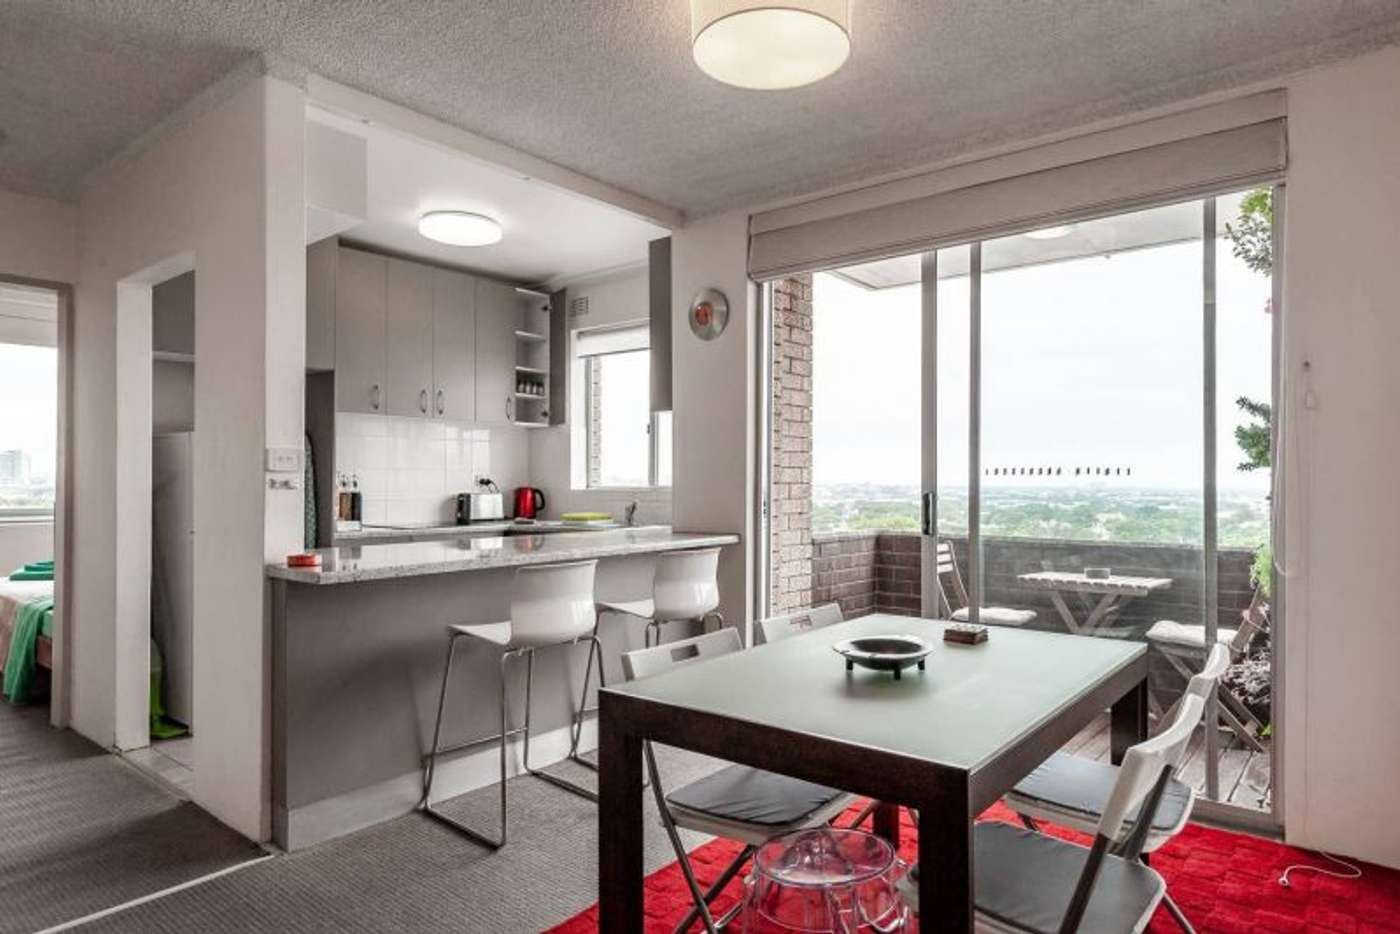 Main view of Homely apartment listing, 49/2-6 Brown Street, Newtown NSW 2042